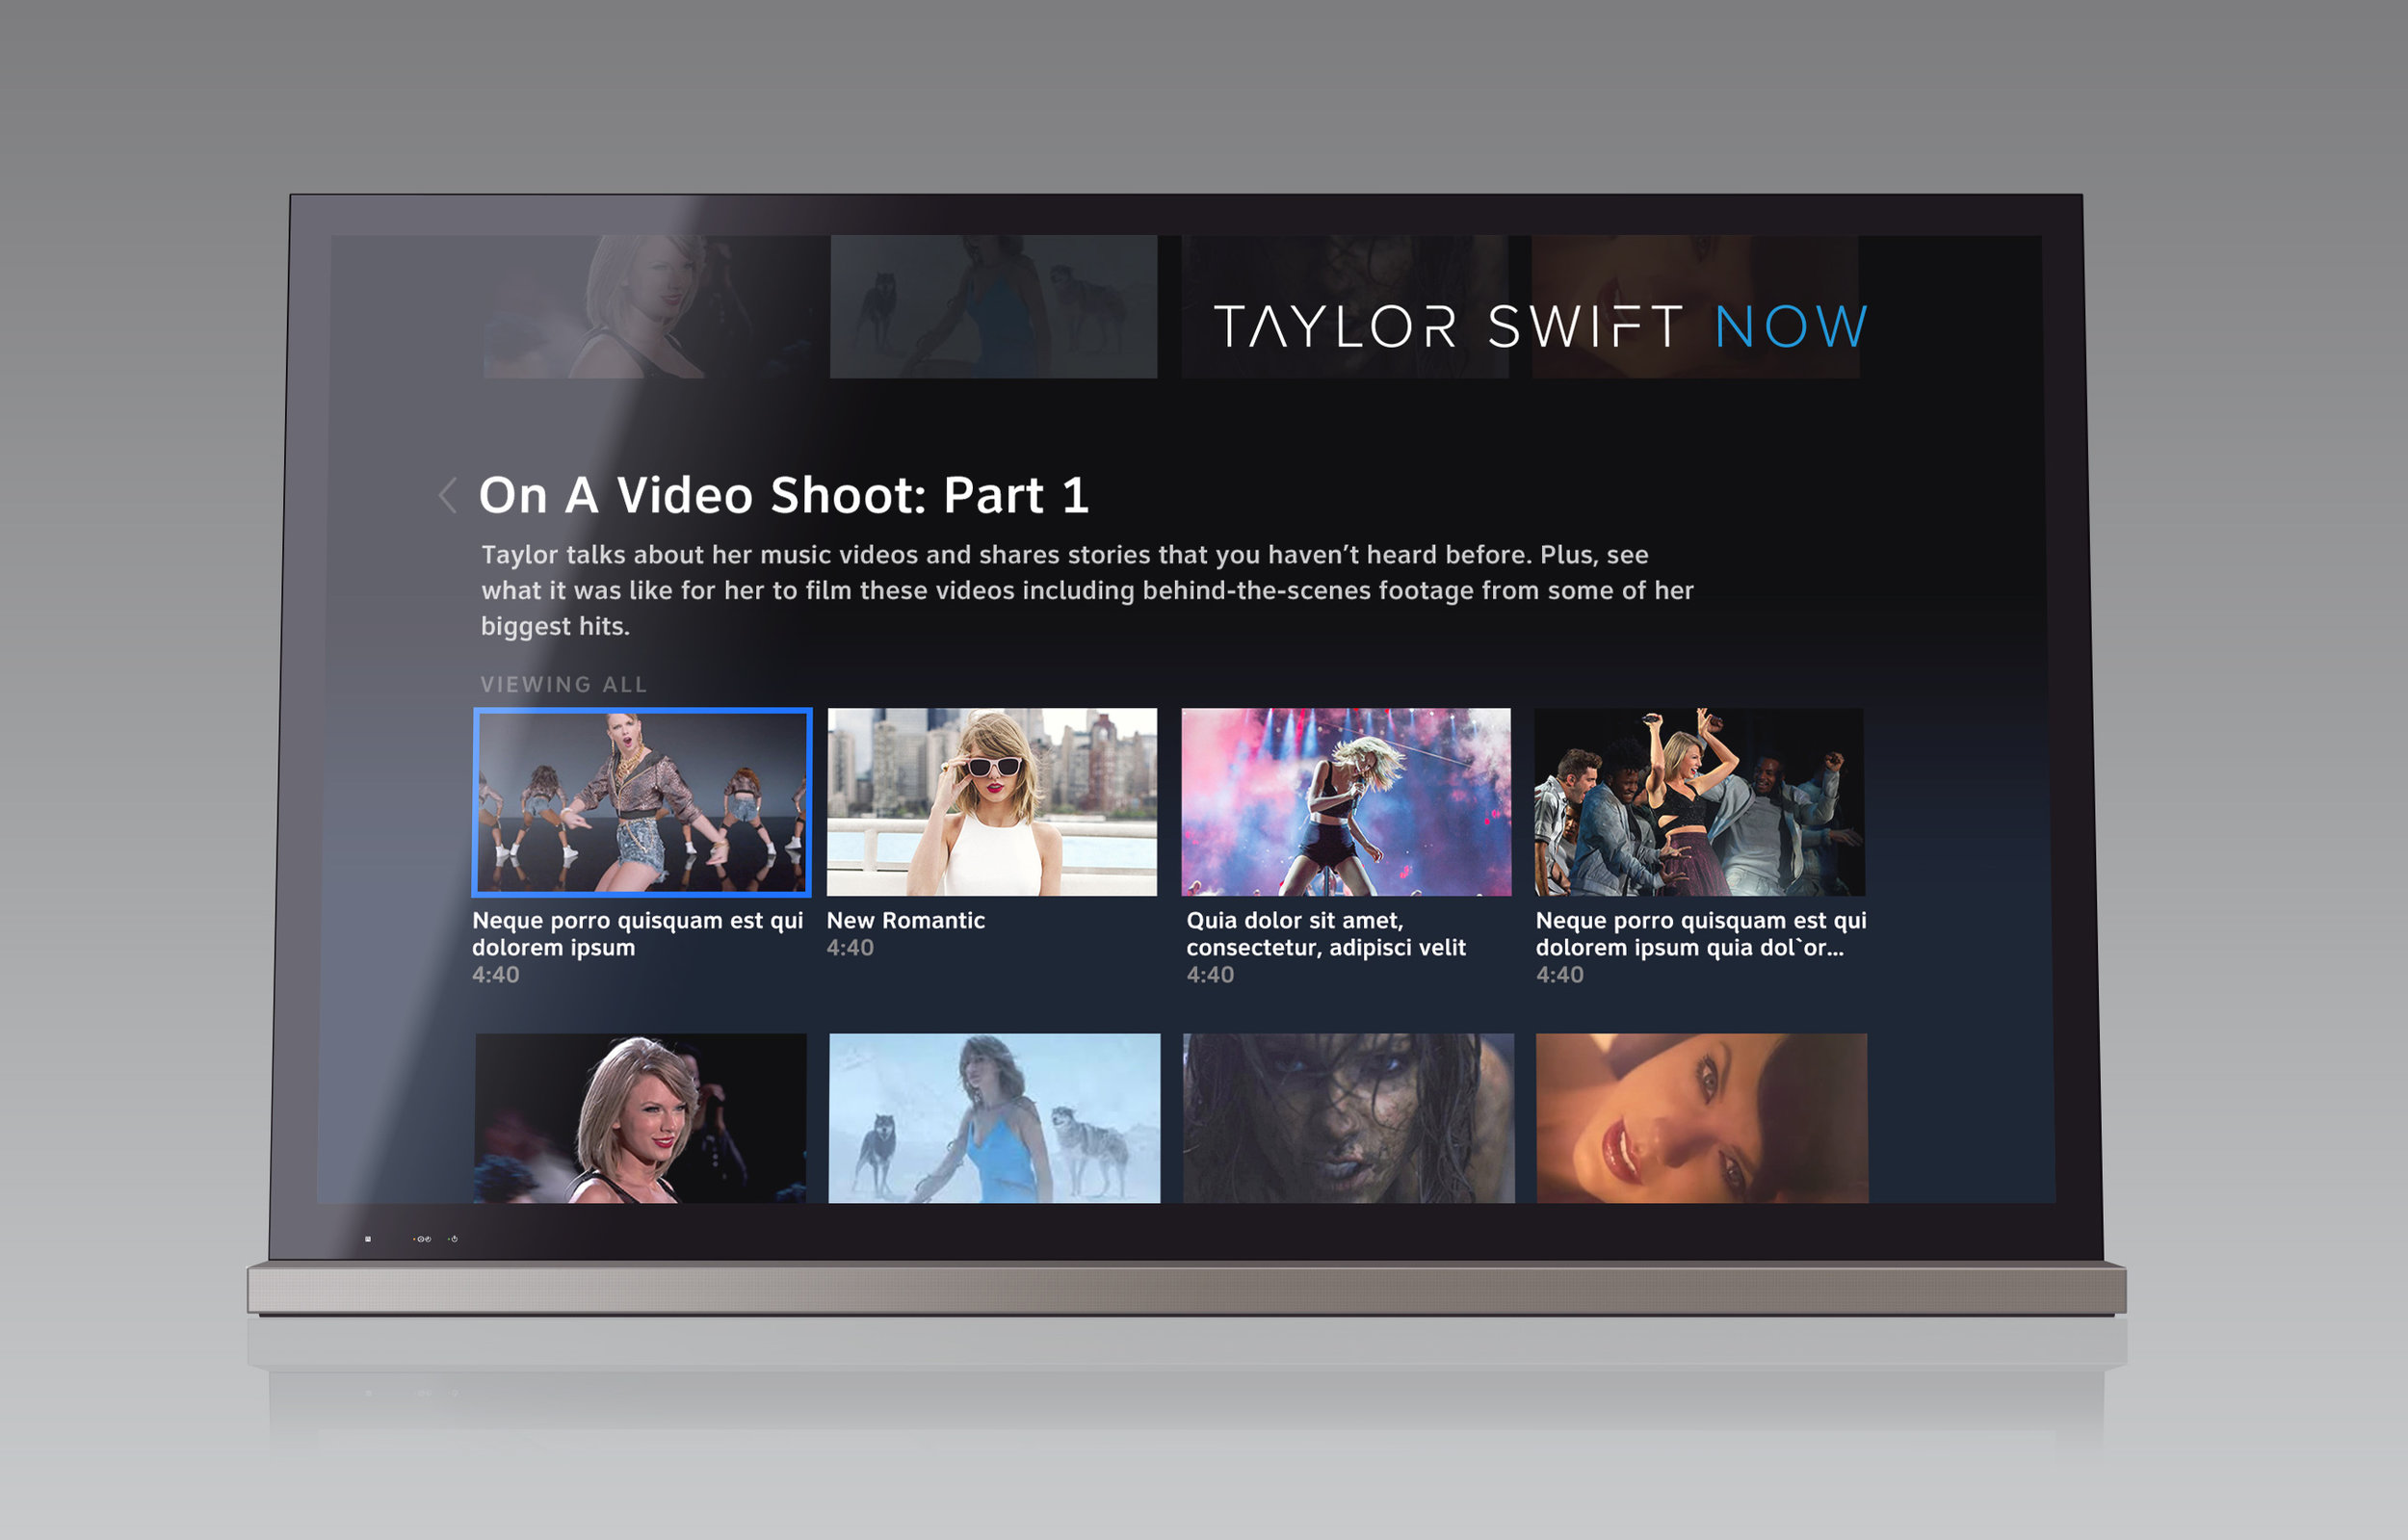 Taylor Swift Now - Taylor Swift NOW provides fans with video footage all relating to Taylor so that fans can stay engaged with her. It is a unique experience for DIRECTV and AT&T U-Verse subscribers.